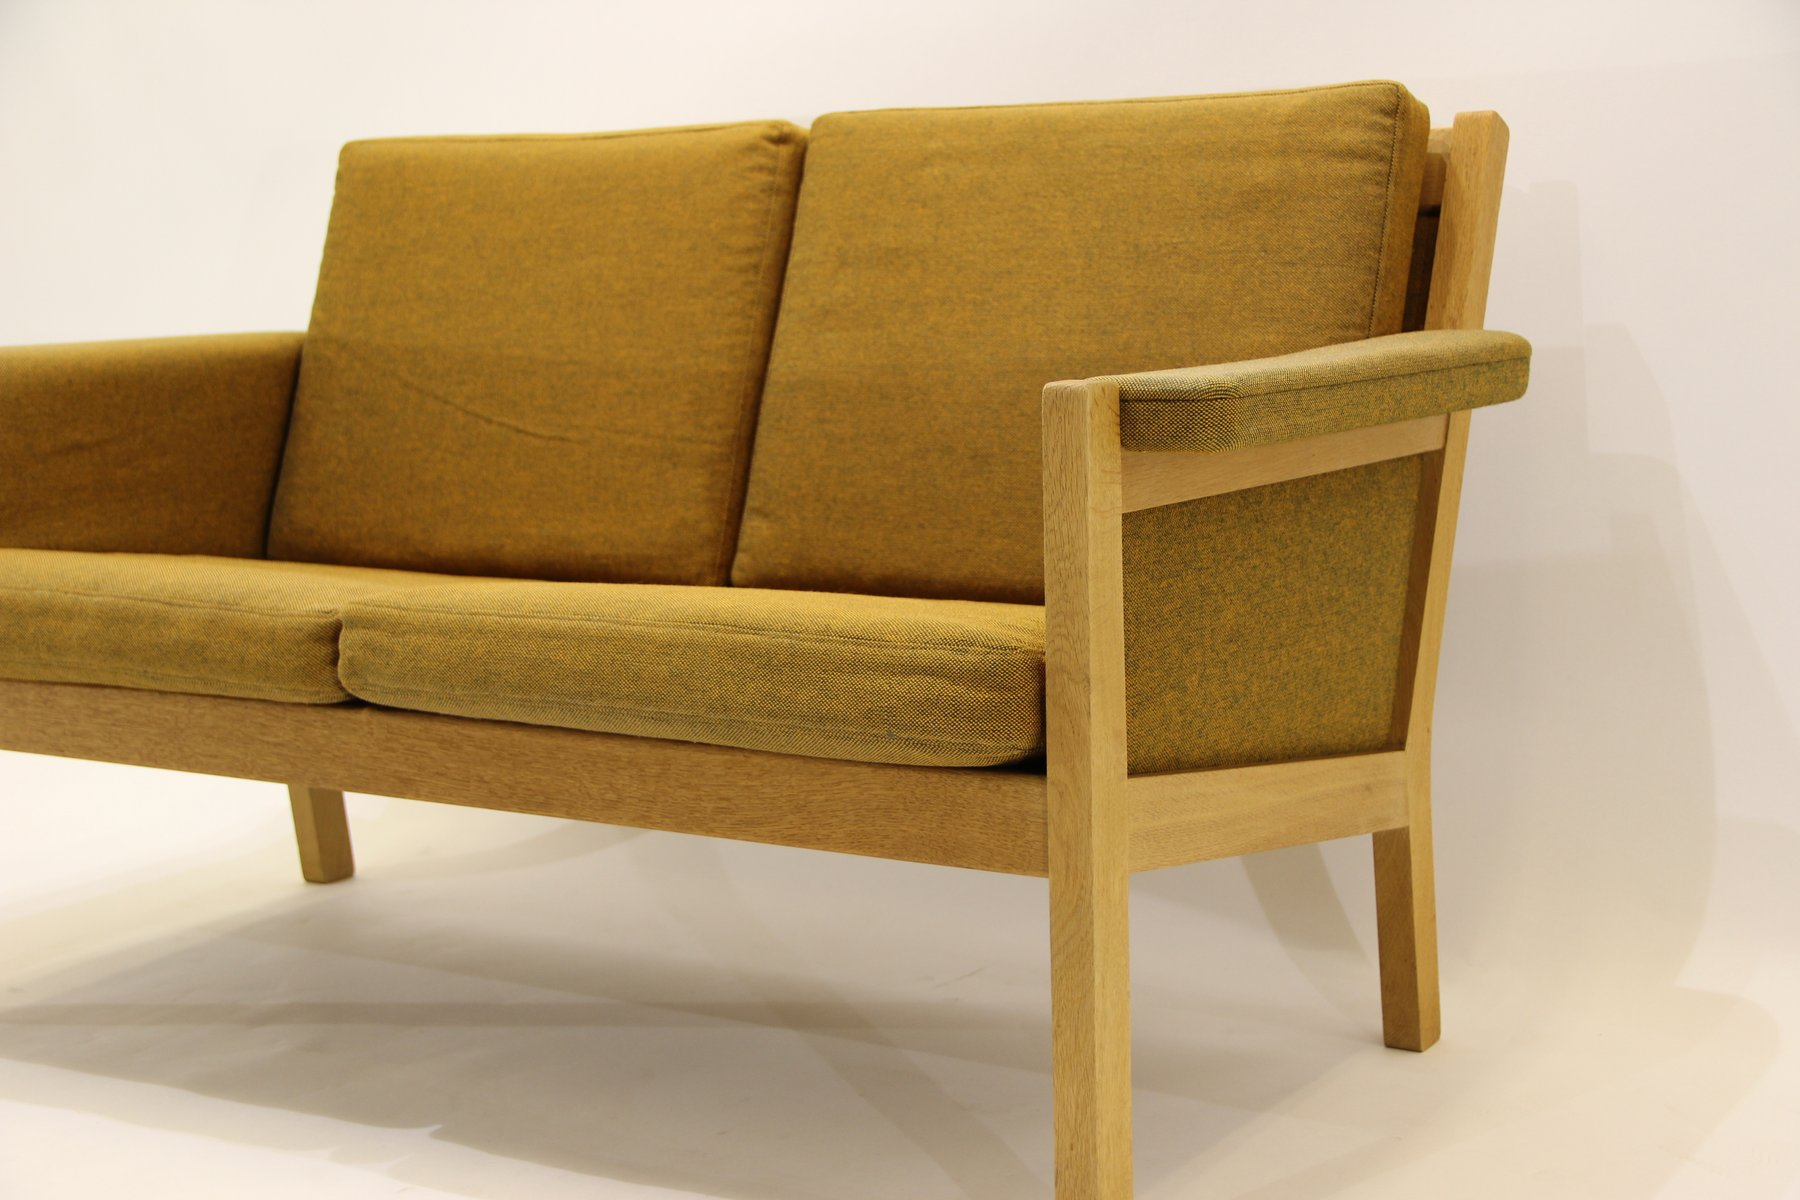 vintage 2 sitzer sofa von hans j wegner f r getama bei pamono kaufen. Black Bedroom Furniture Sets. Home Design Ideas